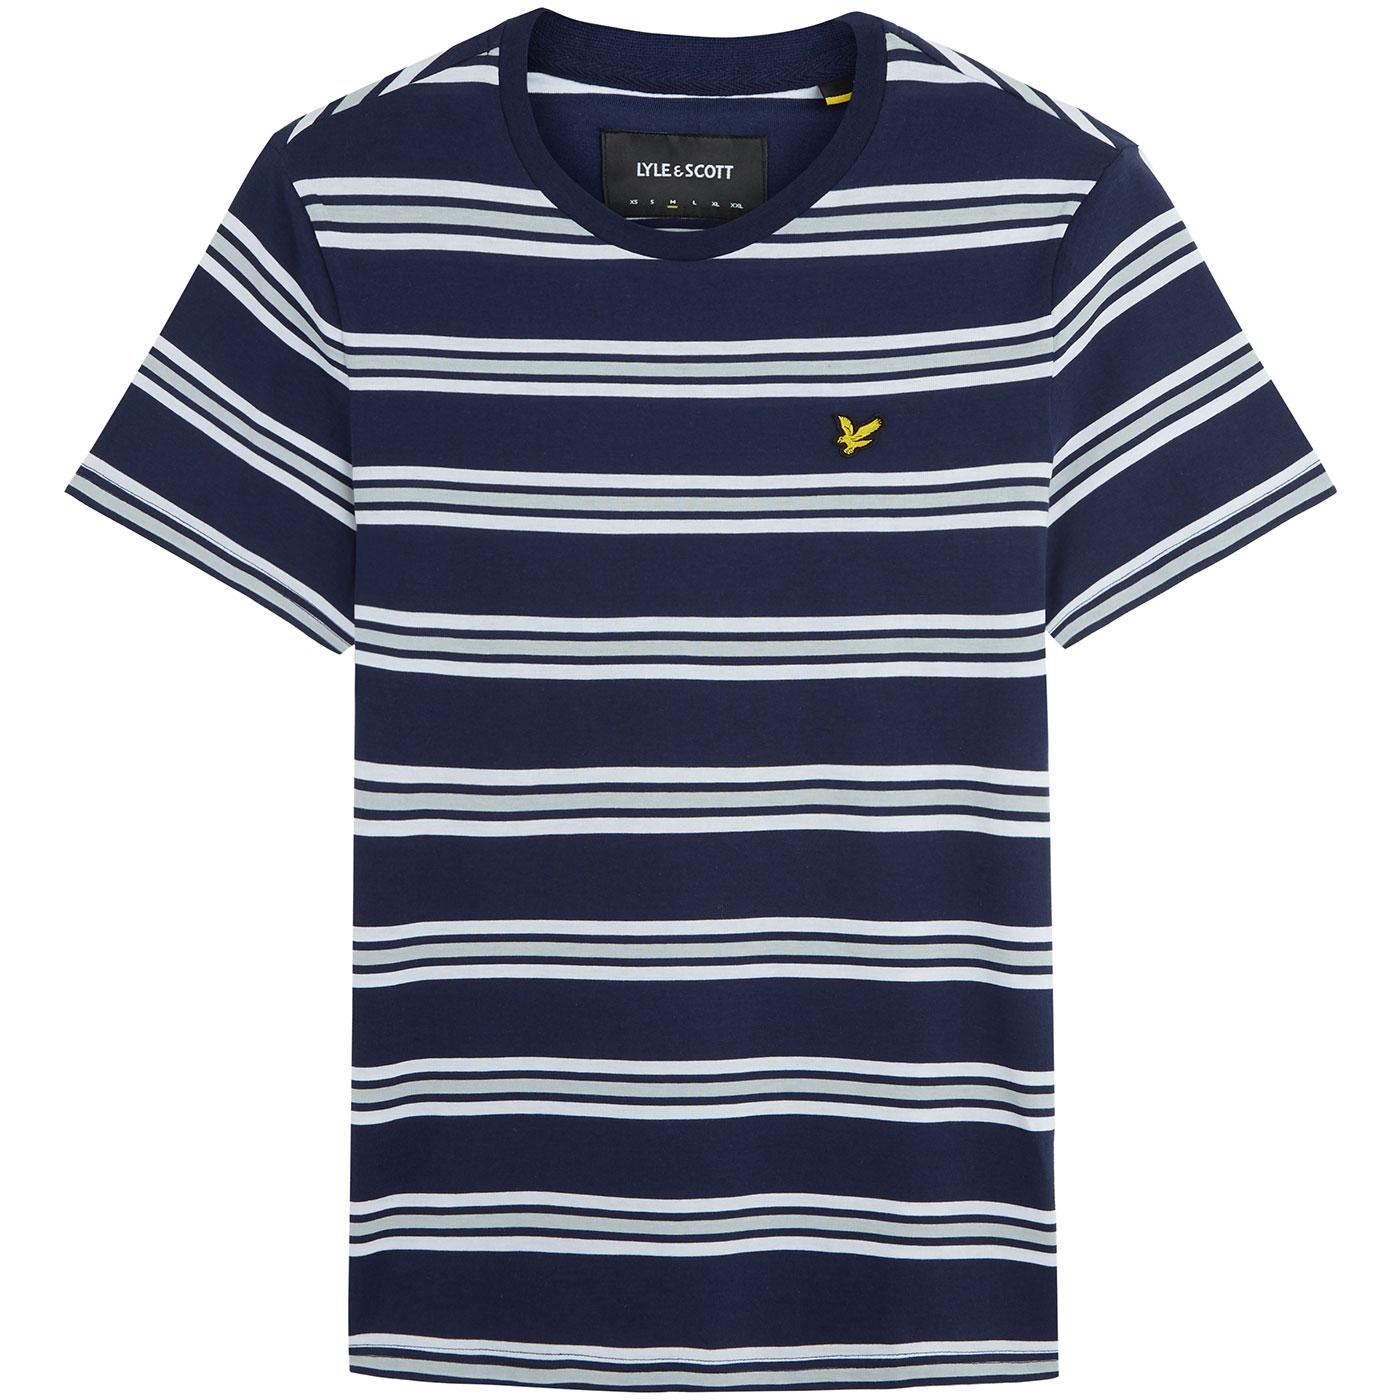 LYLE & SCOTT Indie Multi Stripe Crew Neck Tee NAVY